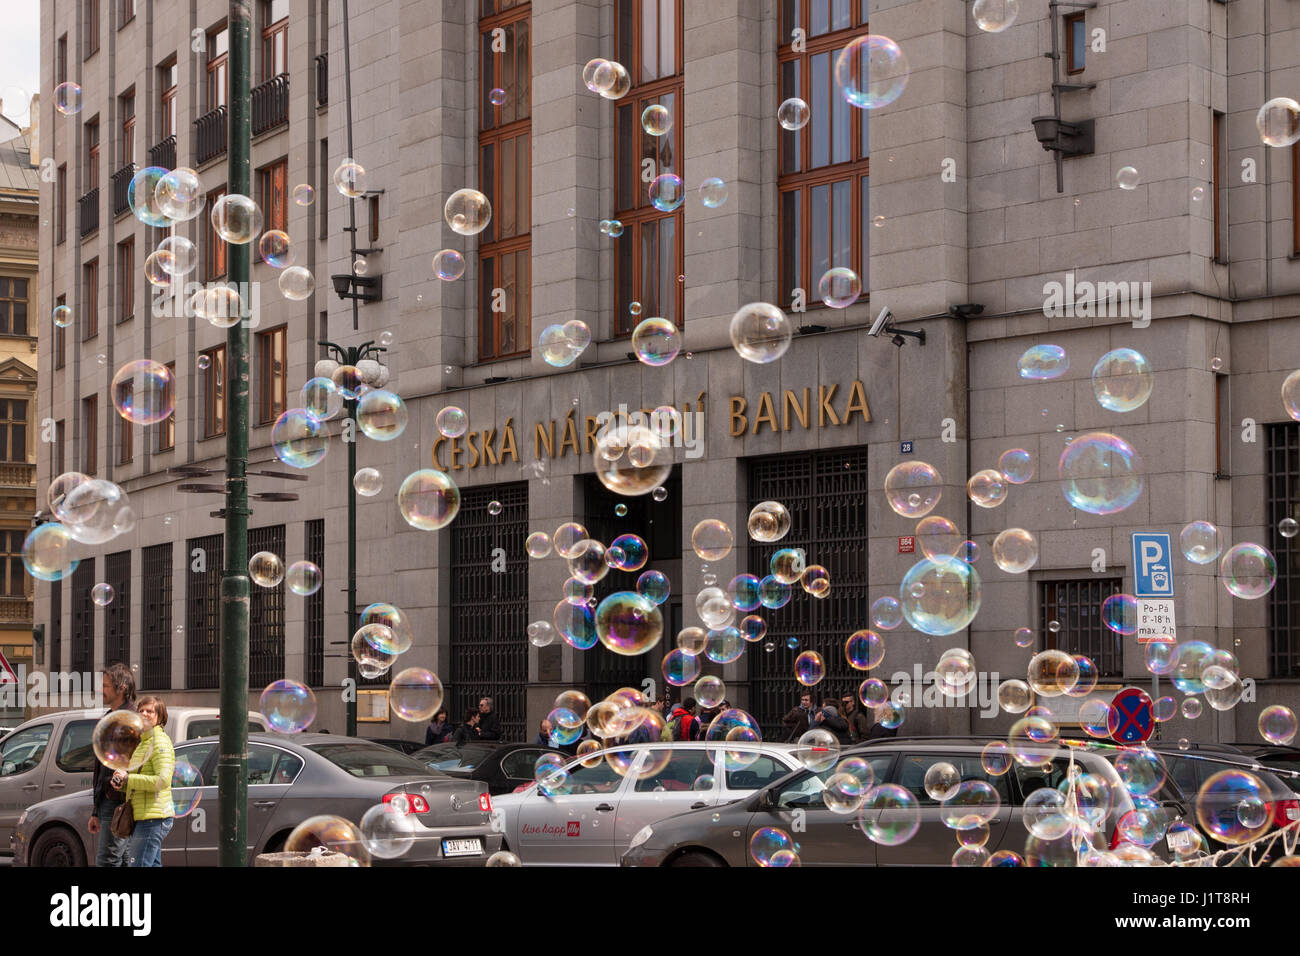 PRAGUE, CZECH REPUBLIC - APRIL 21, 2017: The building of the Czech National Bank, with colorful bubbles floating Stock Photo